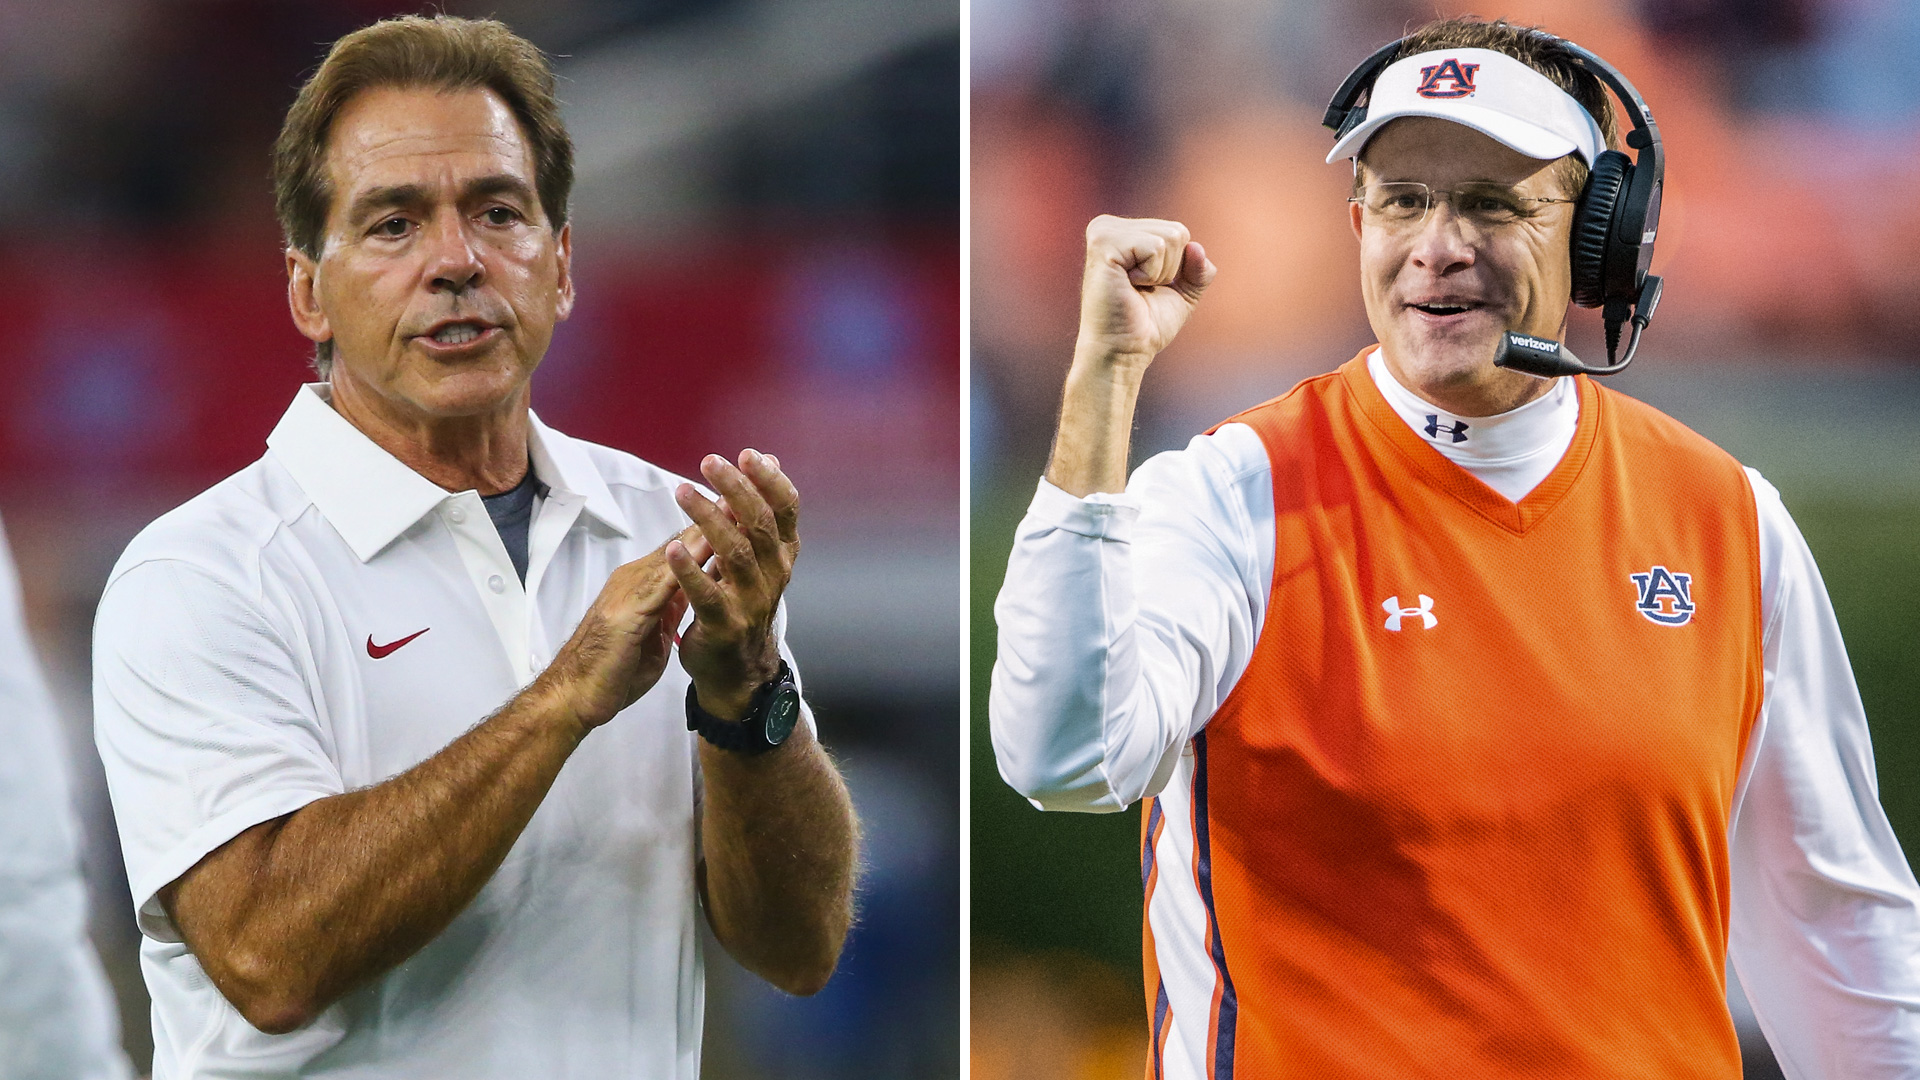 Alabama at Auburn pick from Reno – Resist temptation to bet dog blindly in rivalry game